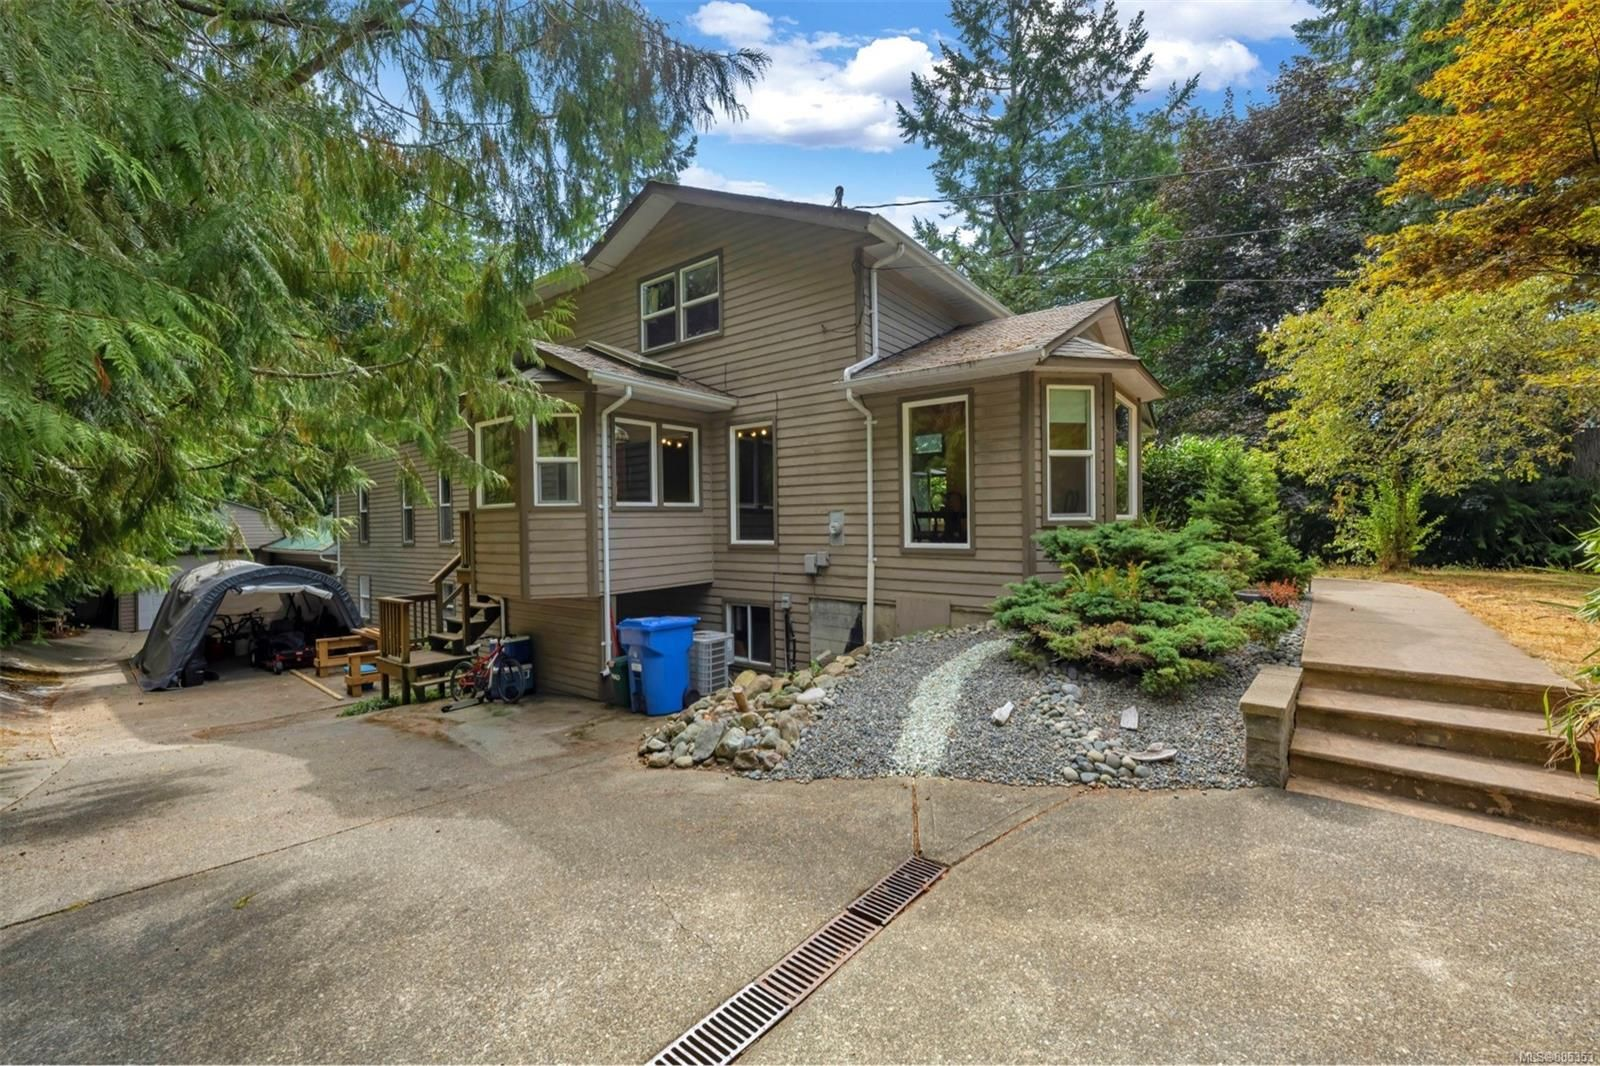 Main Photo: 2657 Nora Pl in : ML Cobble Hill House for sale (Malahat & Area)  : MLS®# 885353